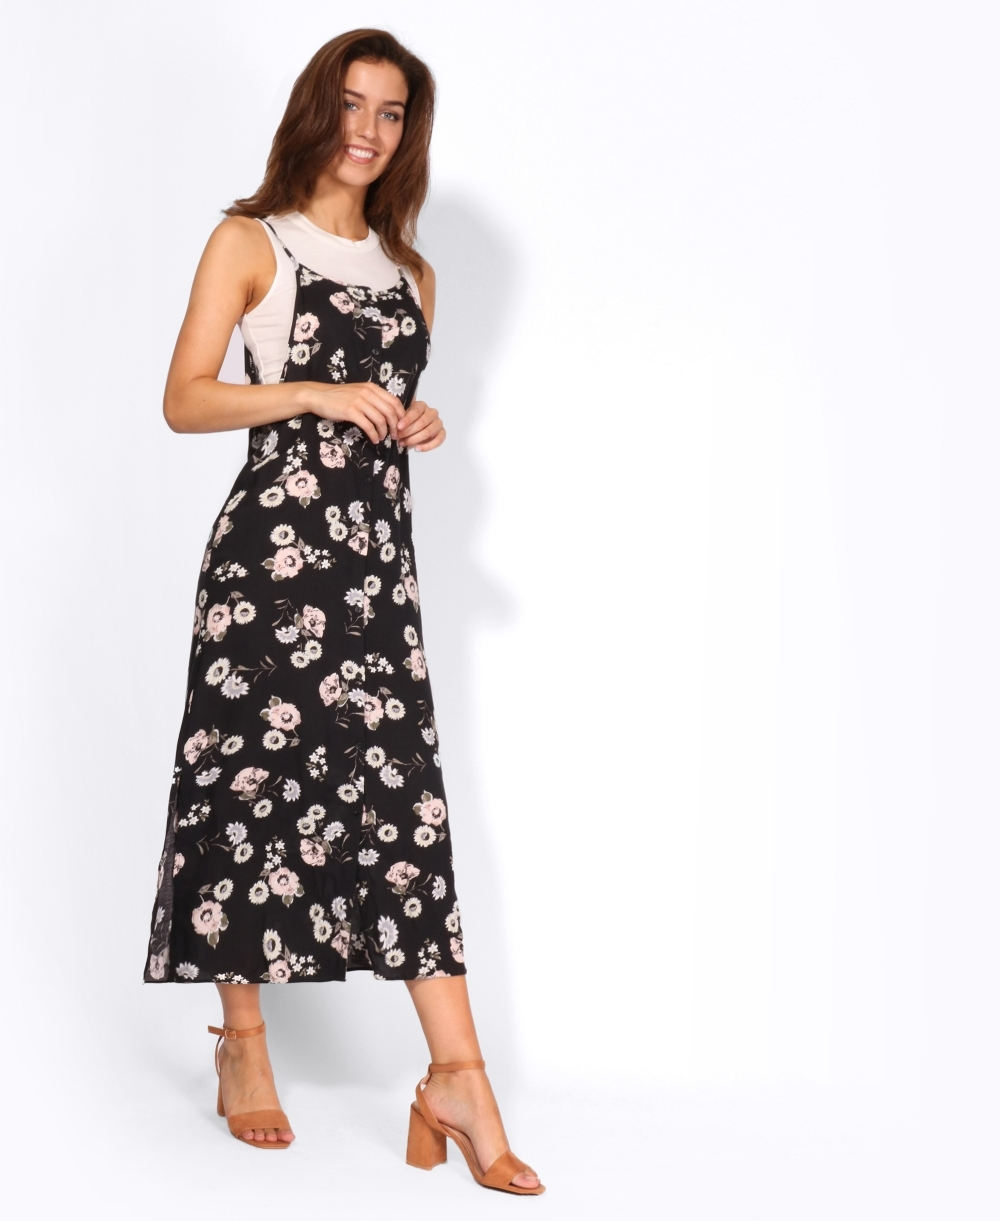 d88d160d16 Floral Slip Dress with Vest